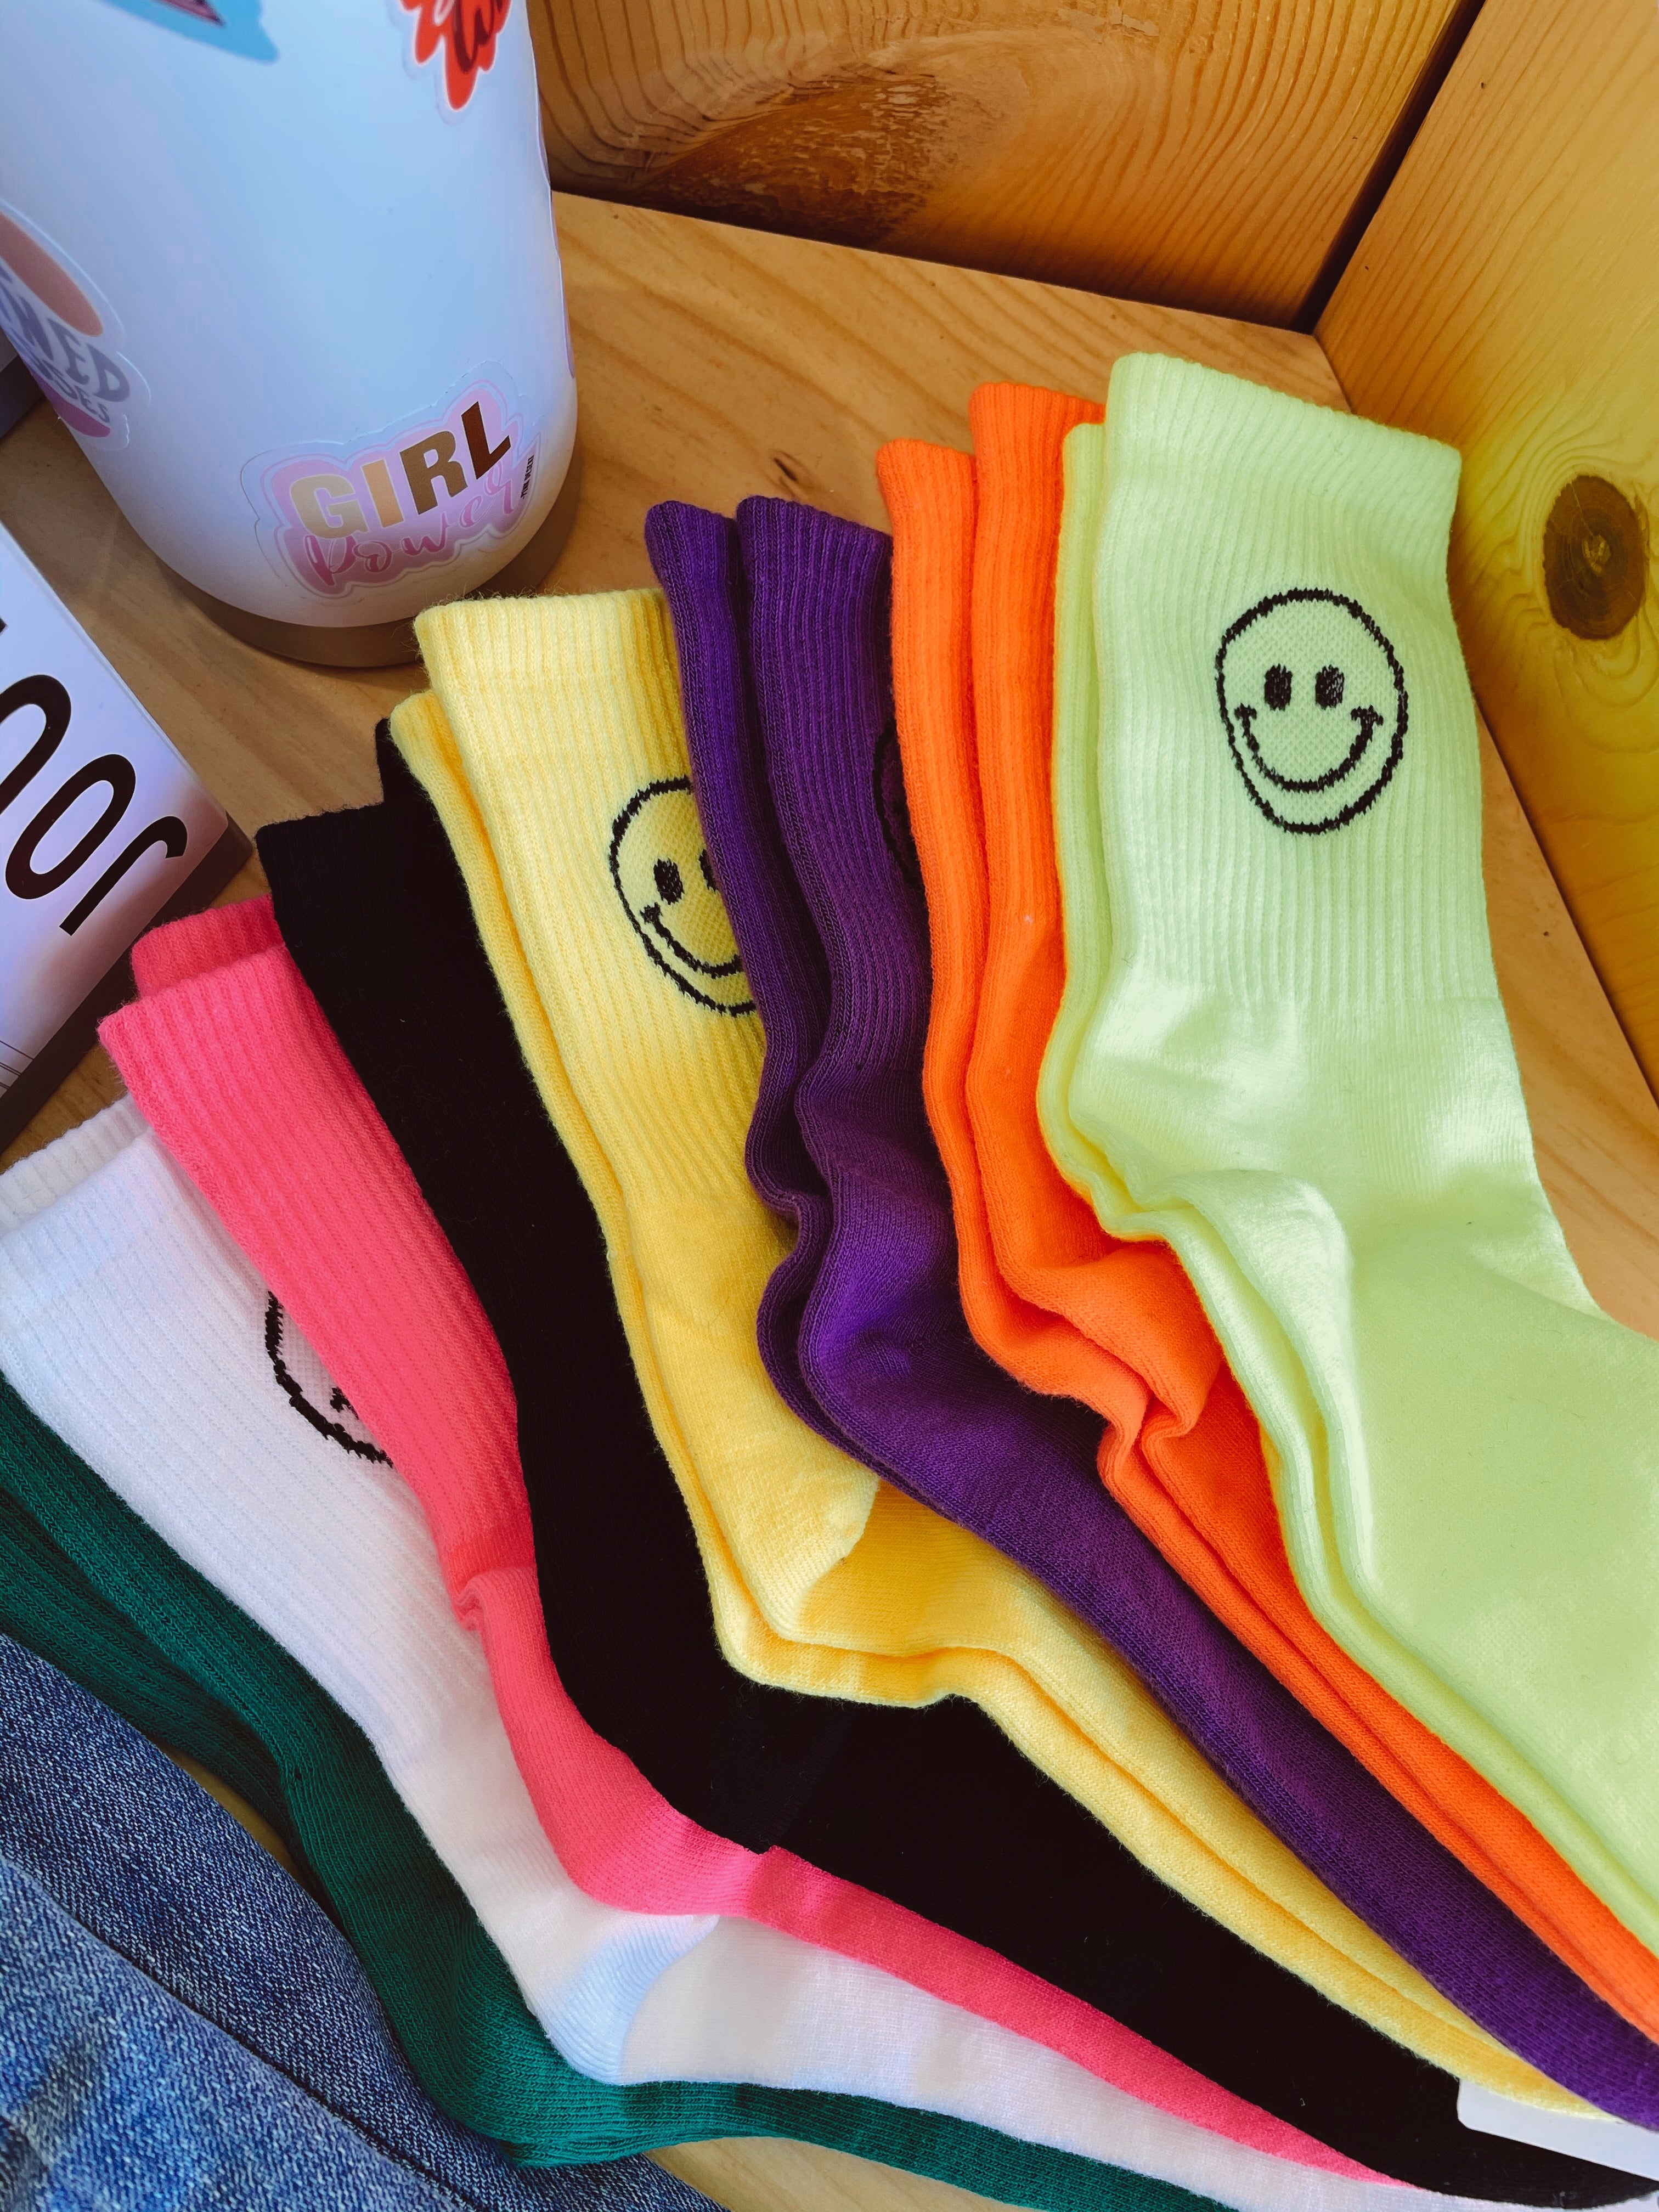 THE SMILEY FACE CREW SOCKS